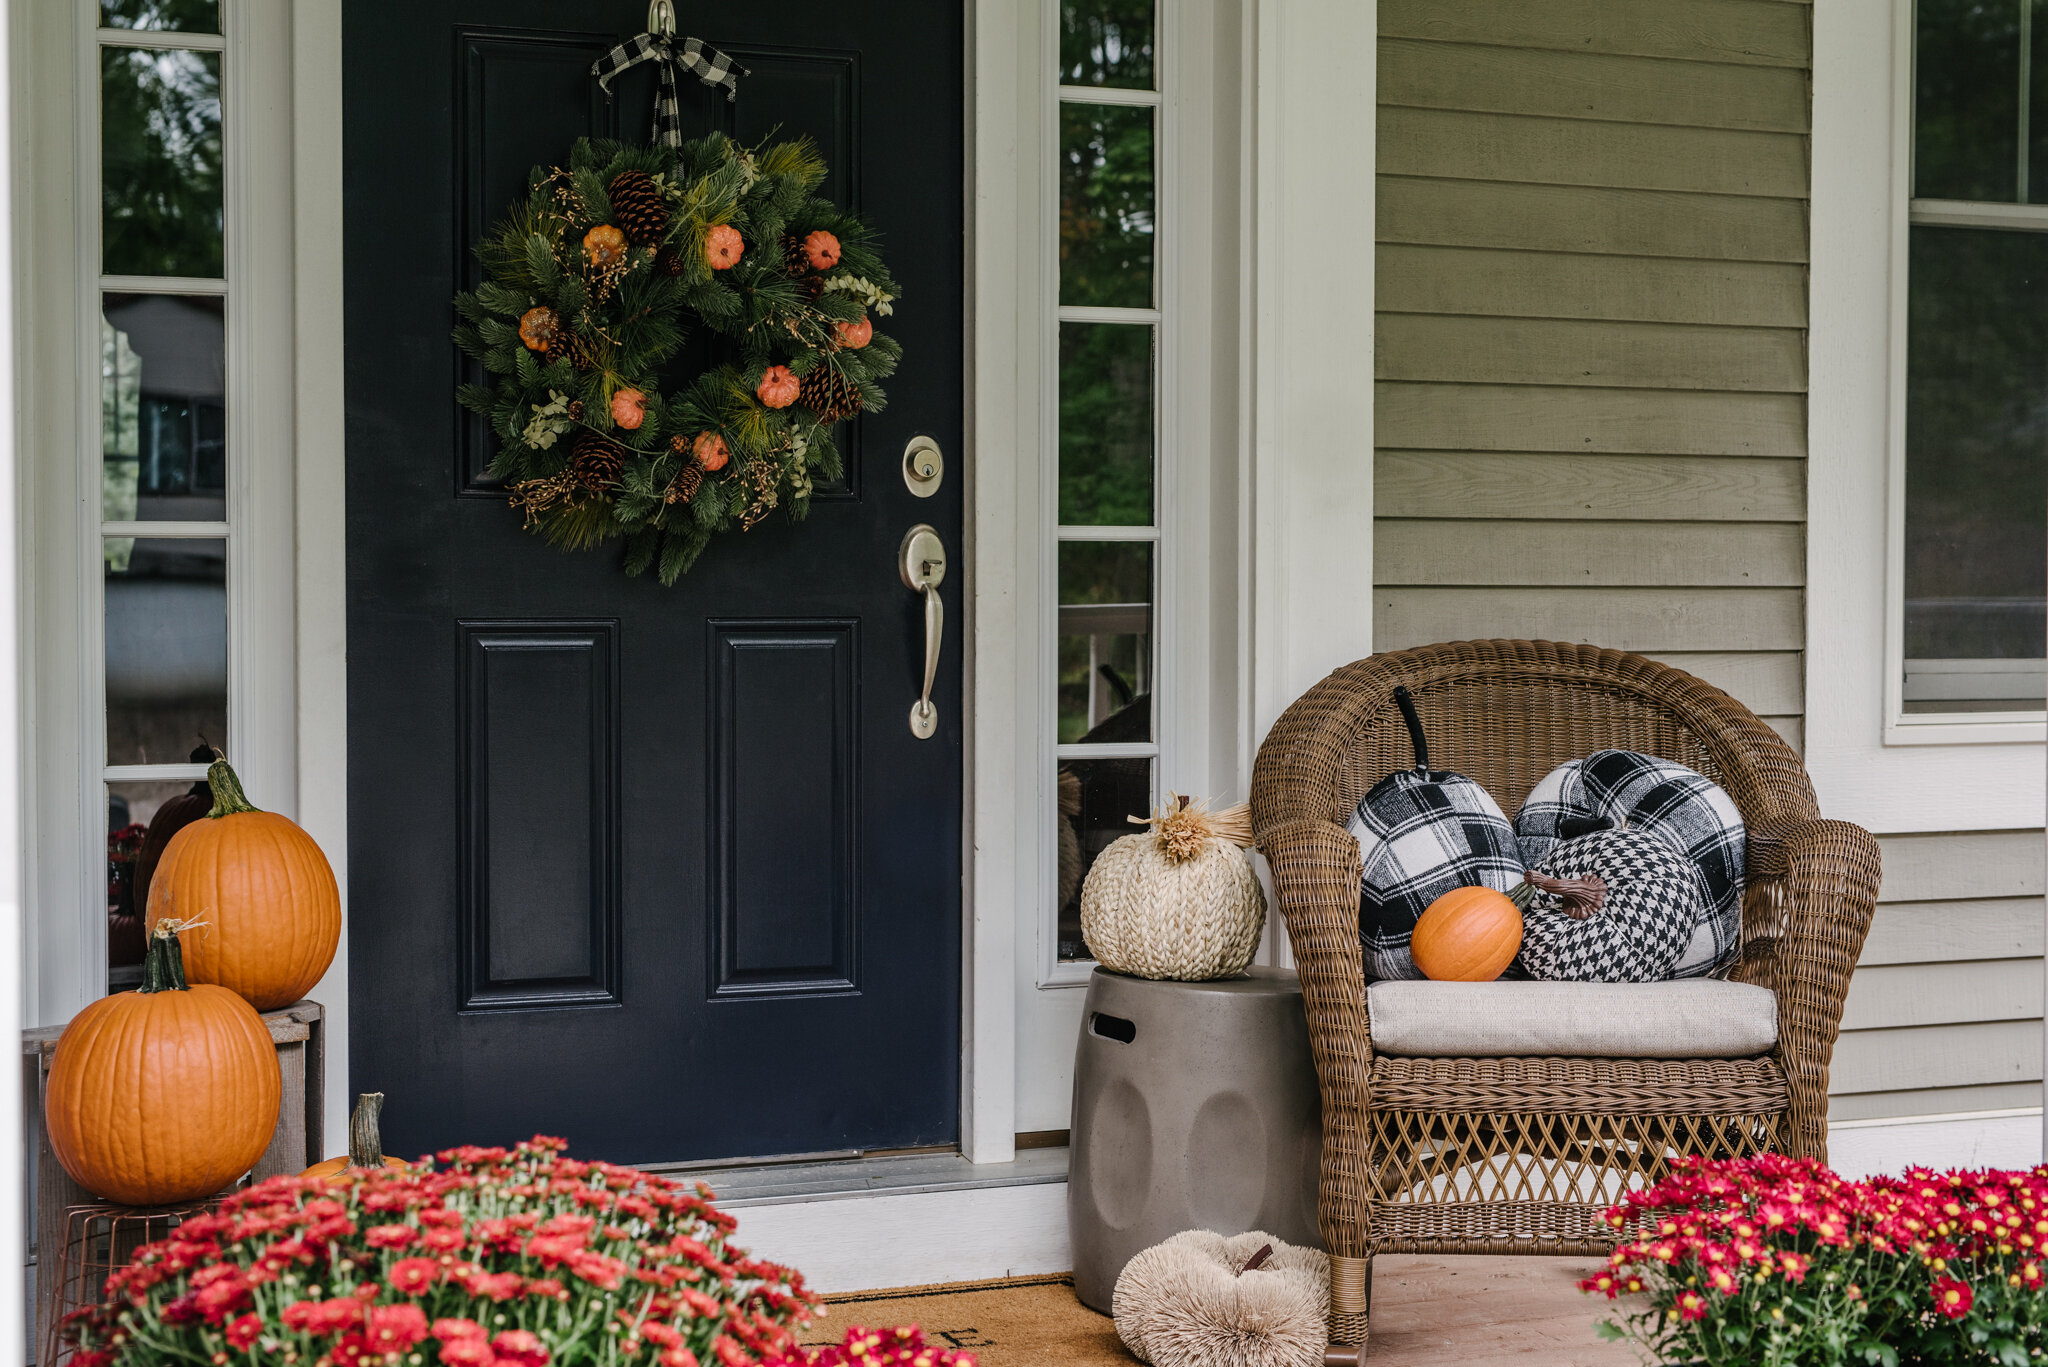 It's amazing what a bit of color and texture adds. Real pumpkins and mums from our local nursery and Walmart. Wreath and Garland via Tree Classics, and I added mini faux pumpkins from the Target Dollar Bin.